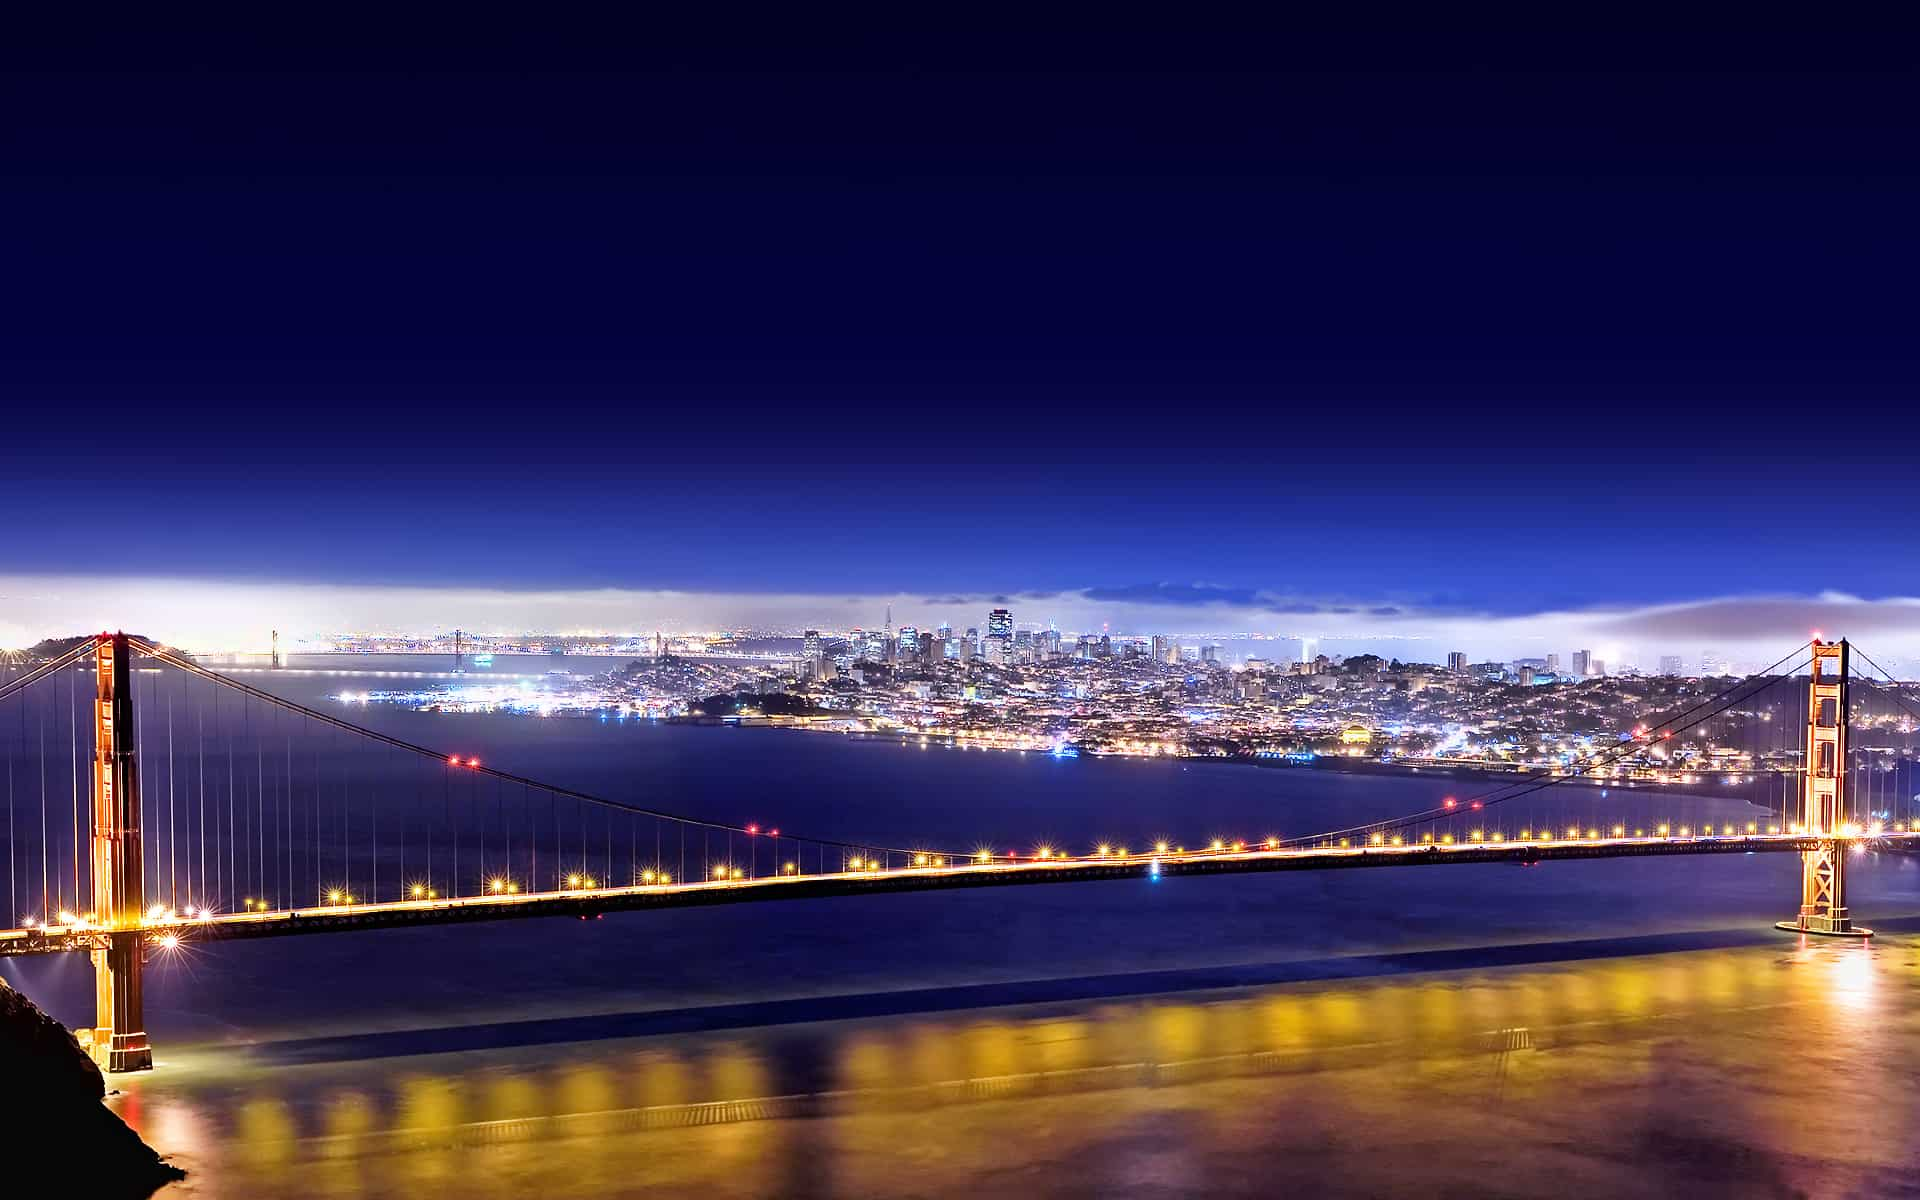 The Most Amazing Video Of San Francisco Ever